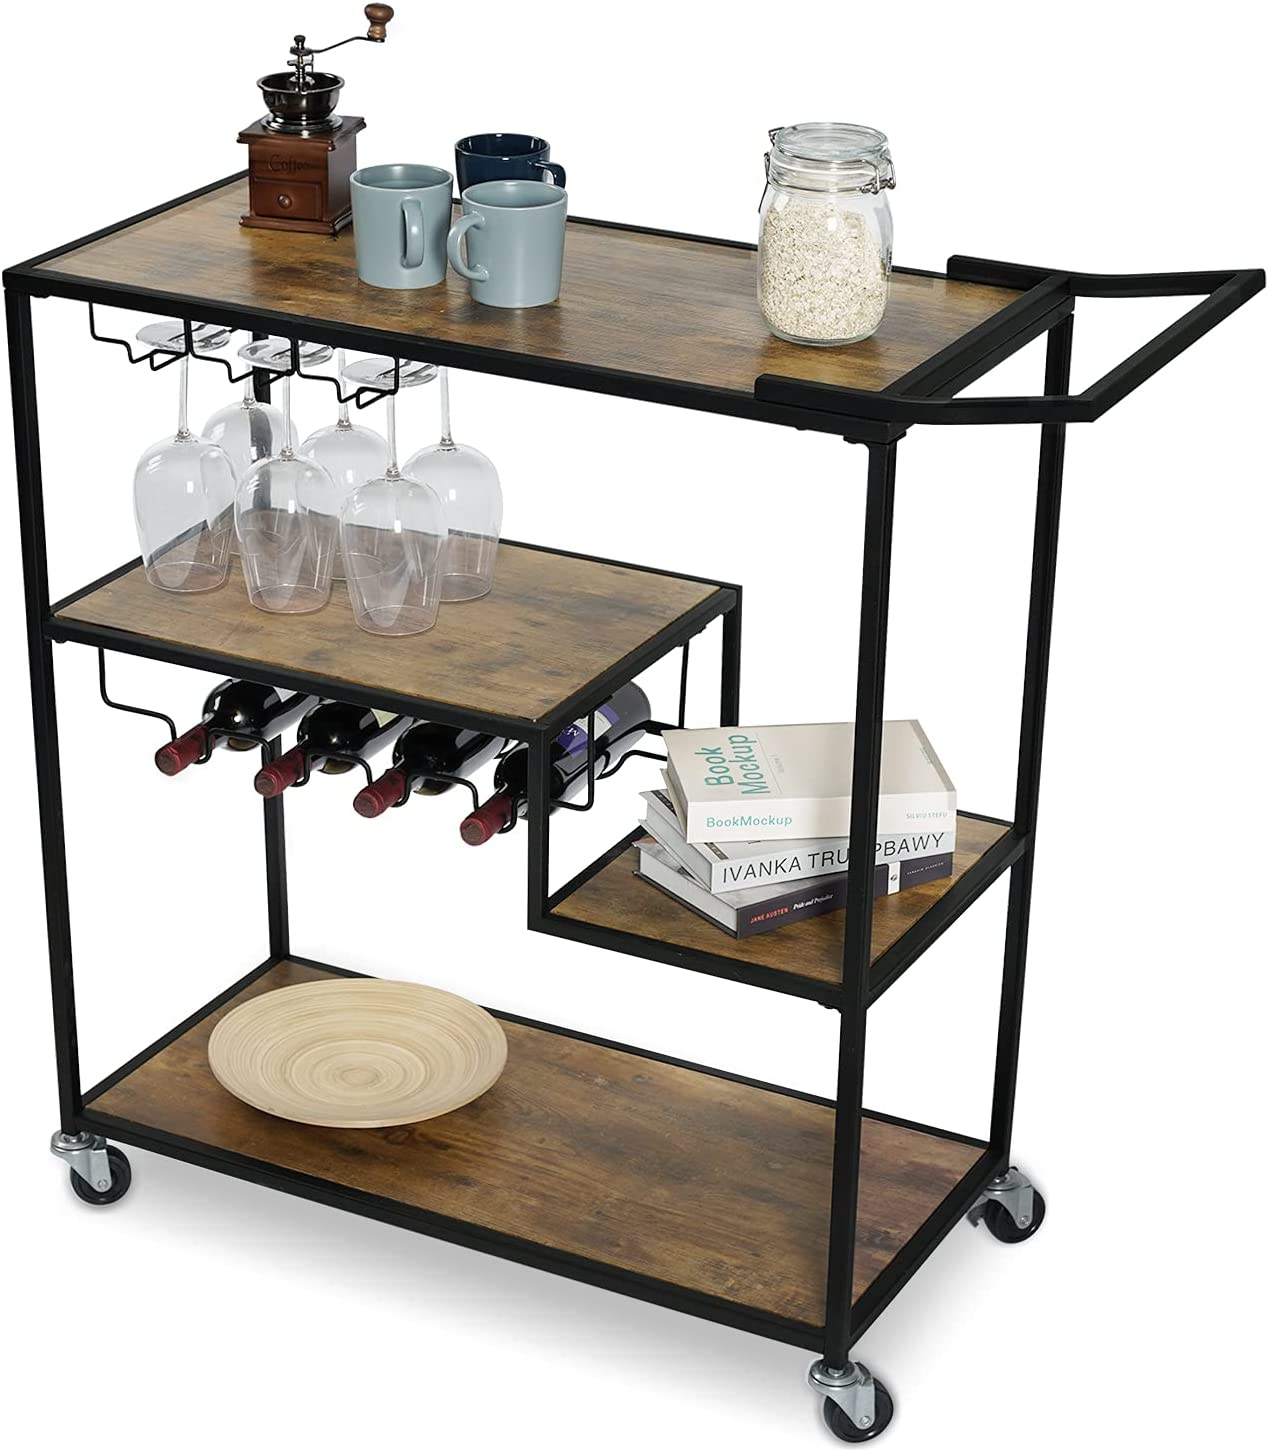 KATDANS Bar Serving Cart-Industrial Kitchen Cart with Wheels - Portable Rolling Serving Trolley - Bar Cart with Wine Rack for Home - 4 Tier Storage Shelves - Rustic Brown, KS015R